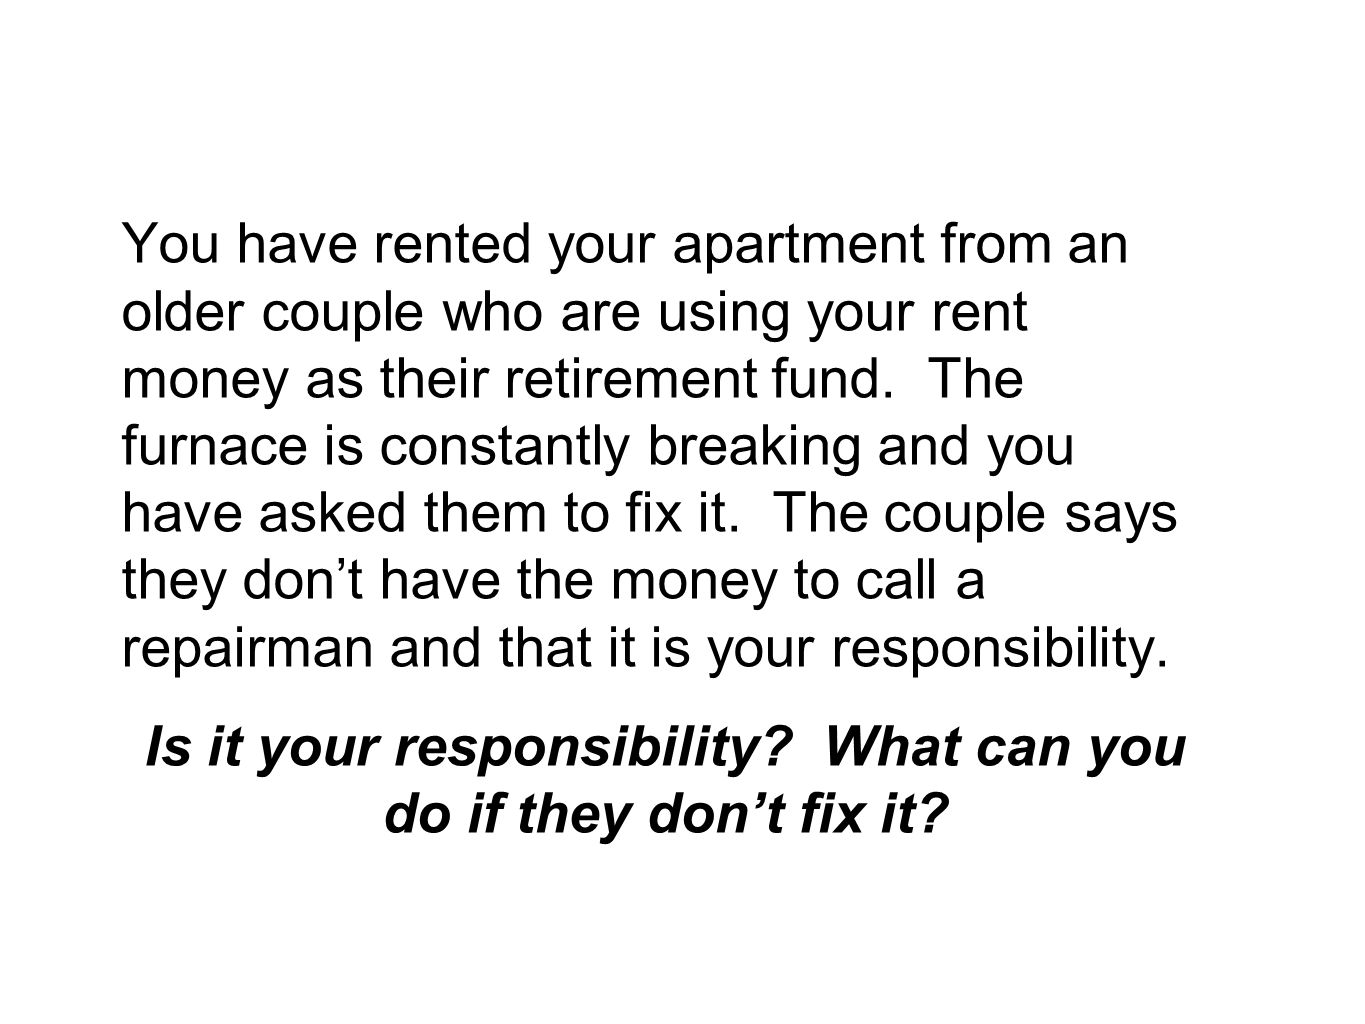 You have rented your apartment from an older couple who are using your rent money as their retirement fund.